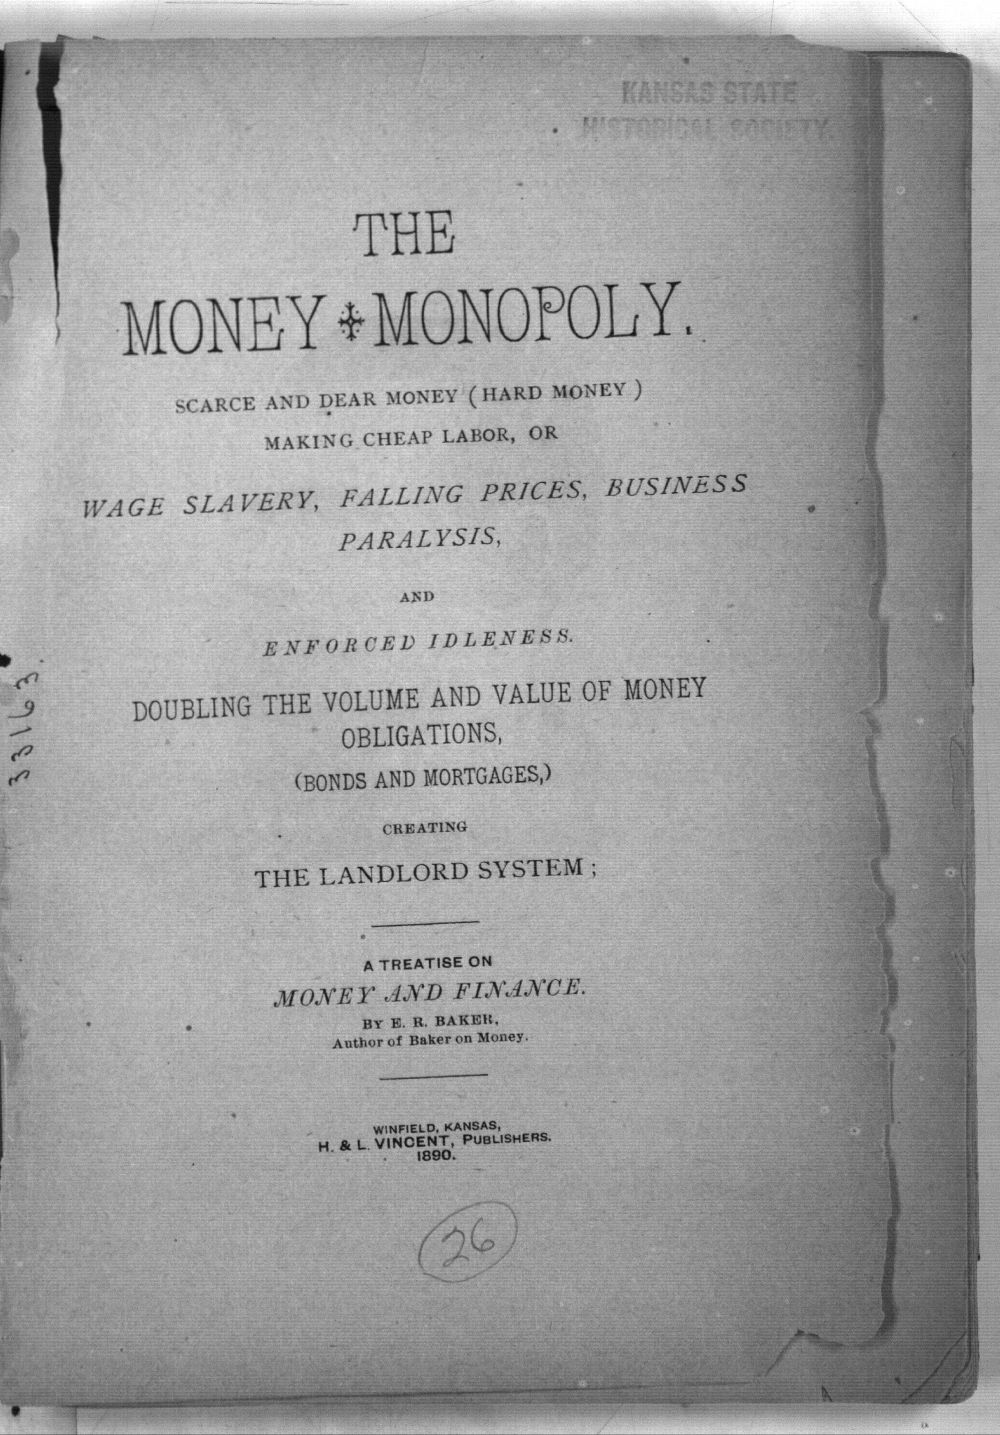 The money monopoly.  Scarce and dear money (hard money) making cheap labor, or wage slavery, falling prices business paralysis, and enforced idleness. - Title Page